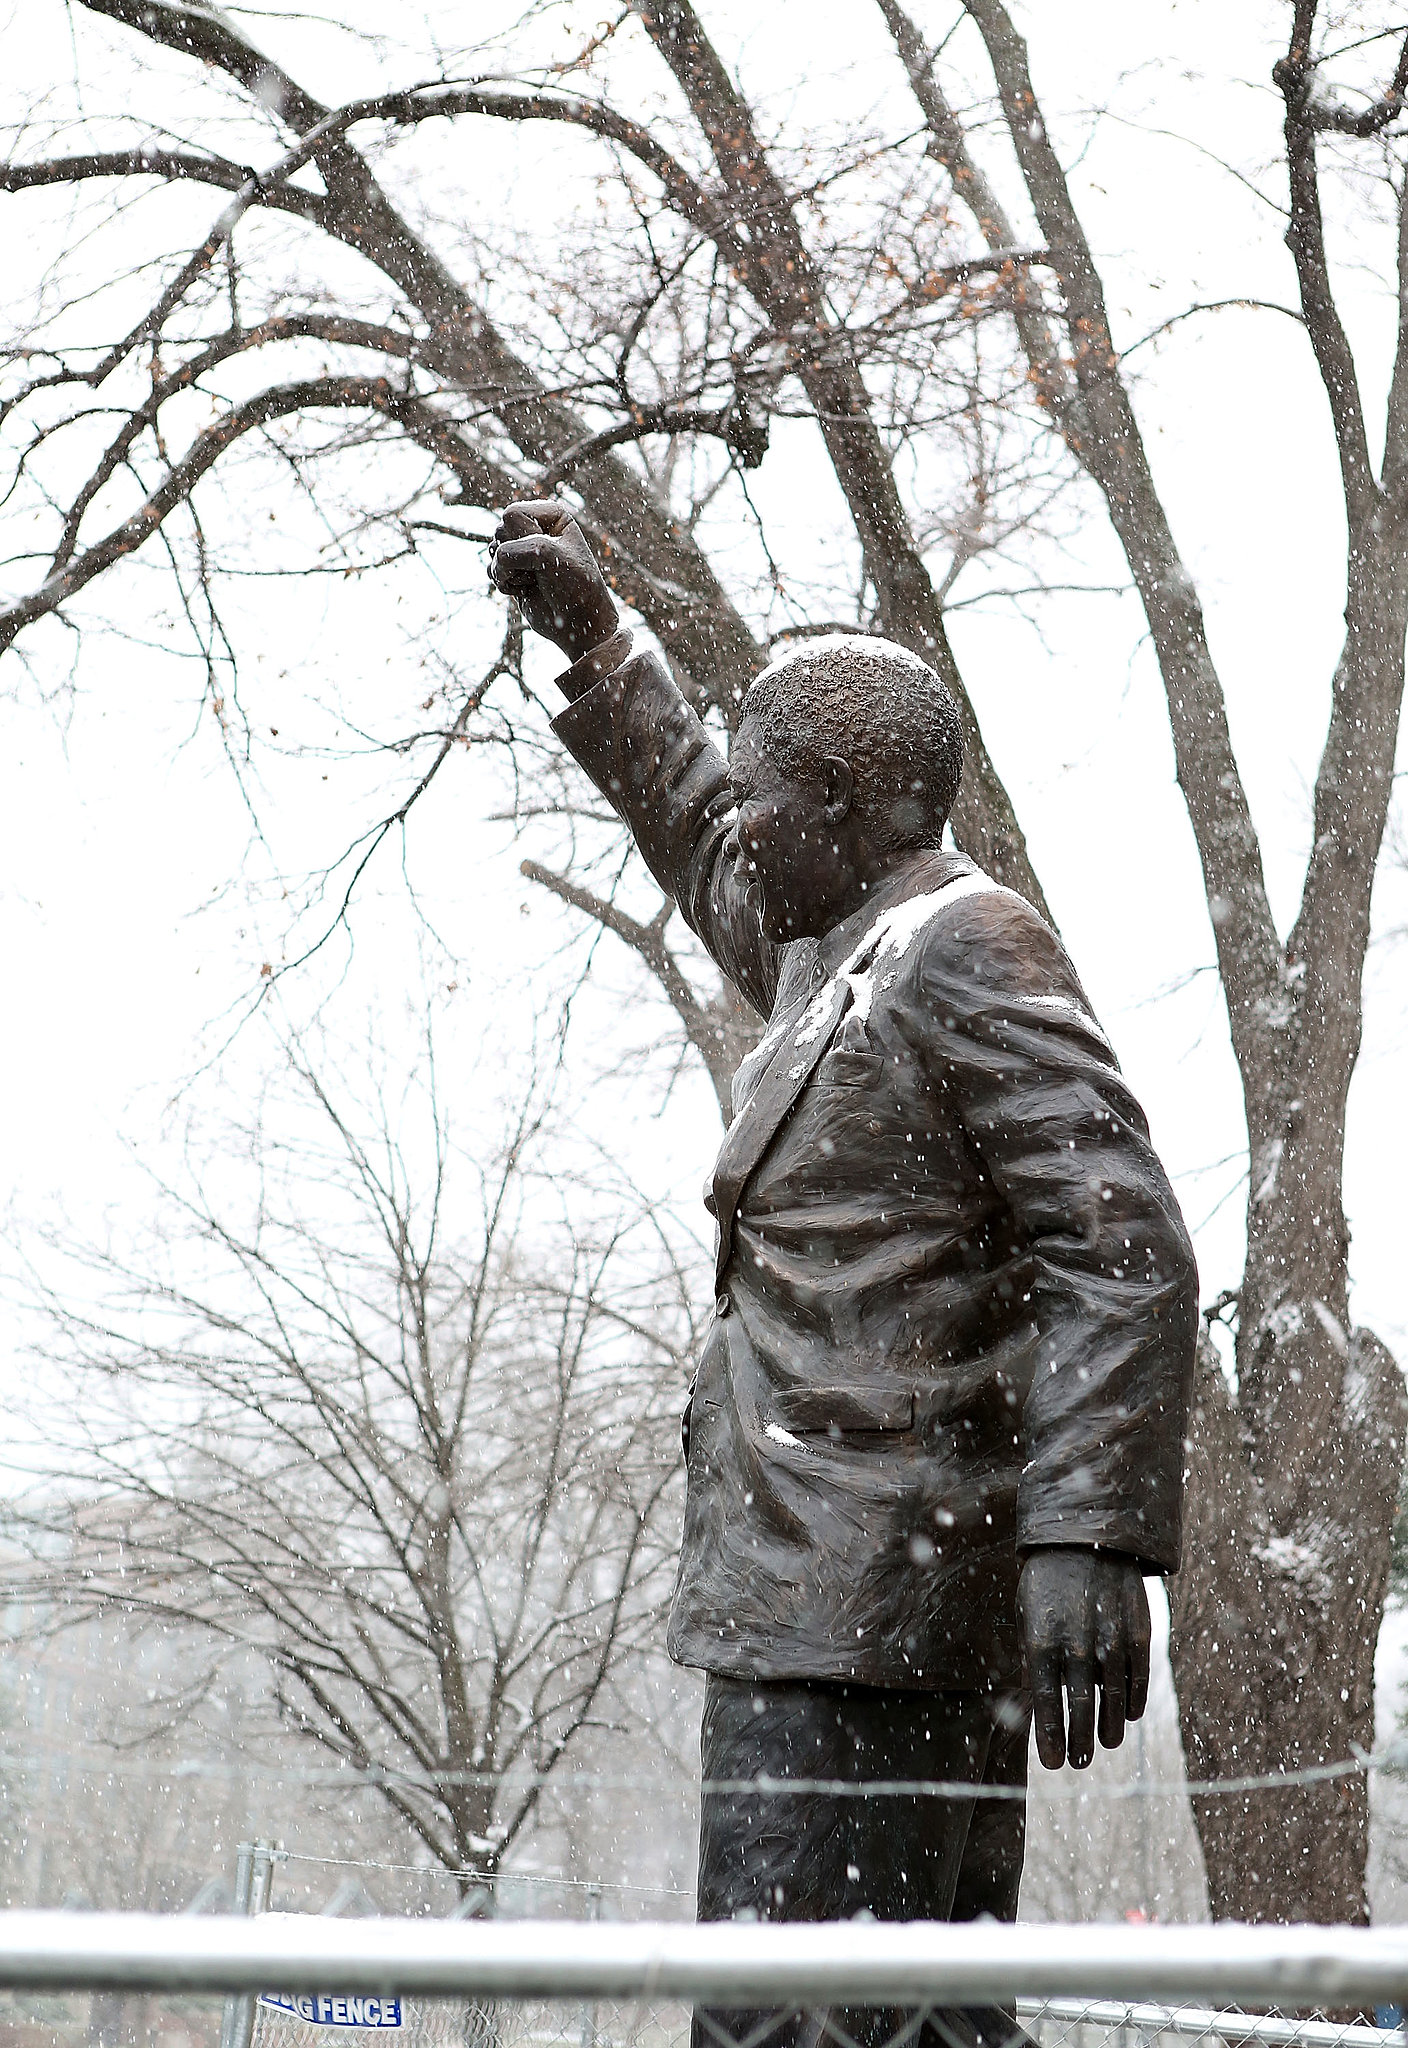 Snow fell on a Nelson Mandela statue outside the South African Embassy in Washington DC.